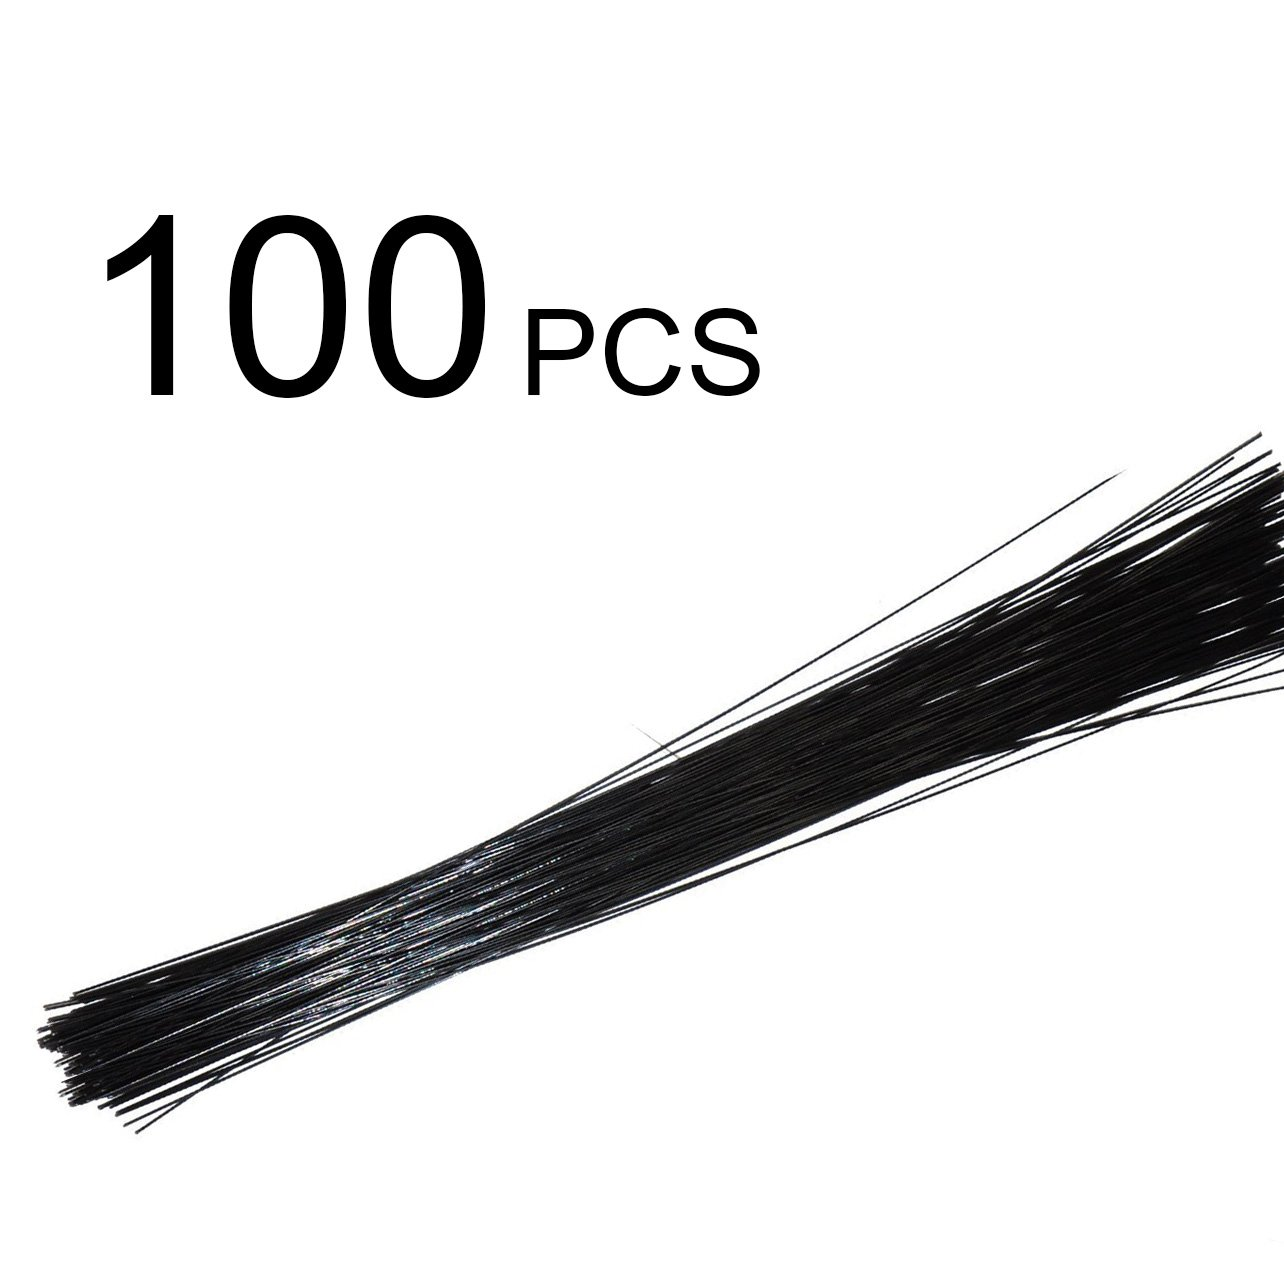 Conjugal Bliss 100PCS Floral Stem Wire Florist Stem Paddle Floral Wire Flower Paper Wrapped Wire For Flowers Packaging Flower Shop Decoration Iron Wire (0.04 inches, BLACK)